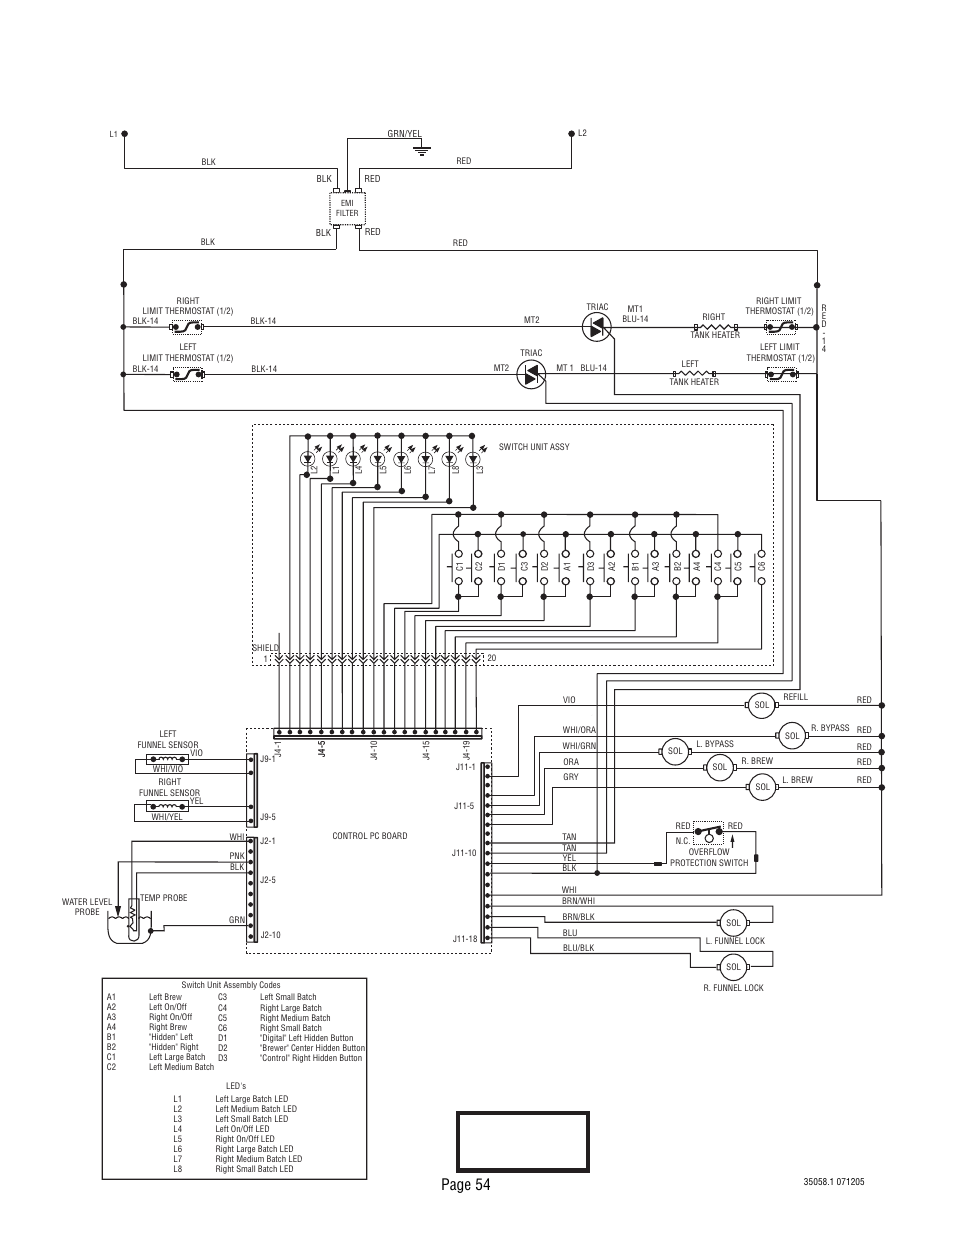 Bunn Model Gr Wiring Diagram Library Vpr Schematic Dual Tf Dbc Brewwise Page 54 User